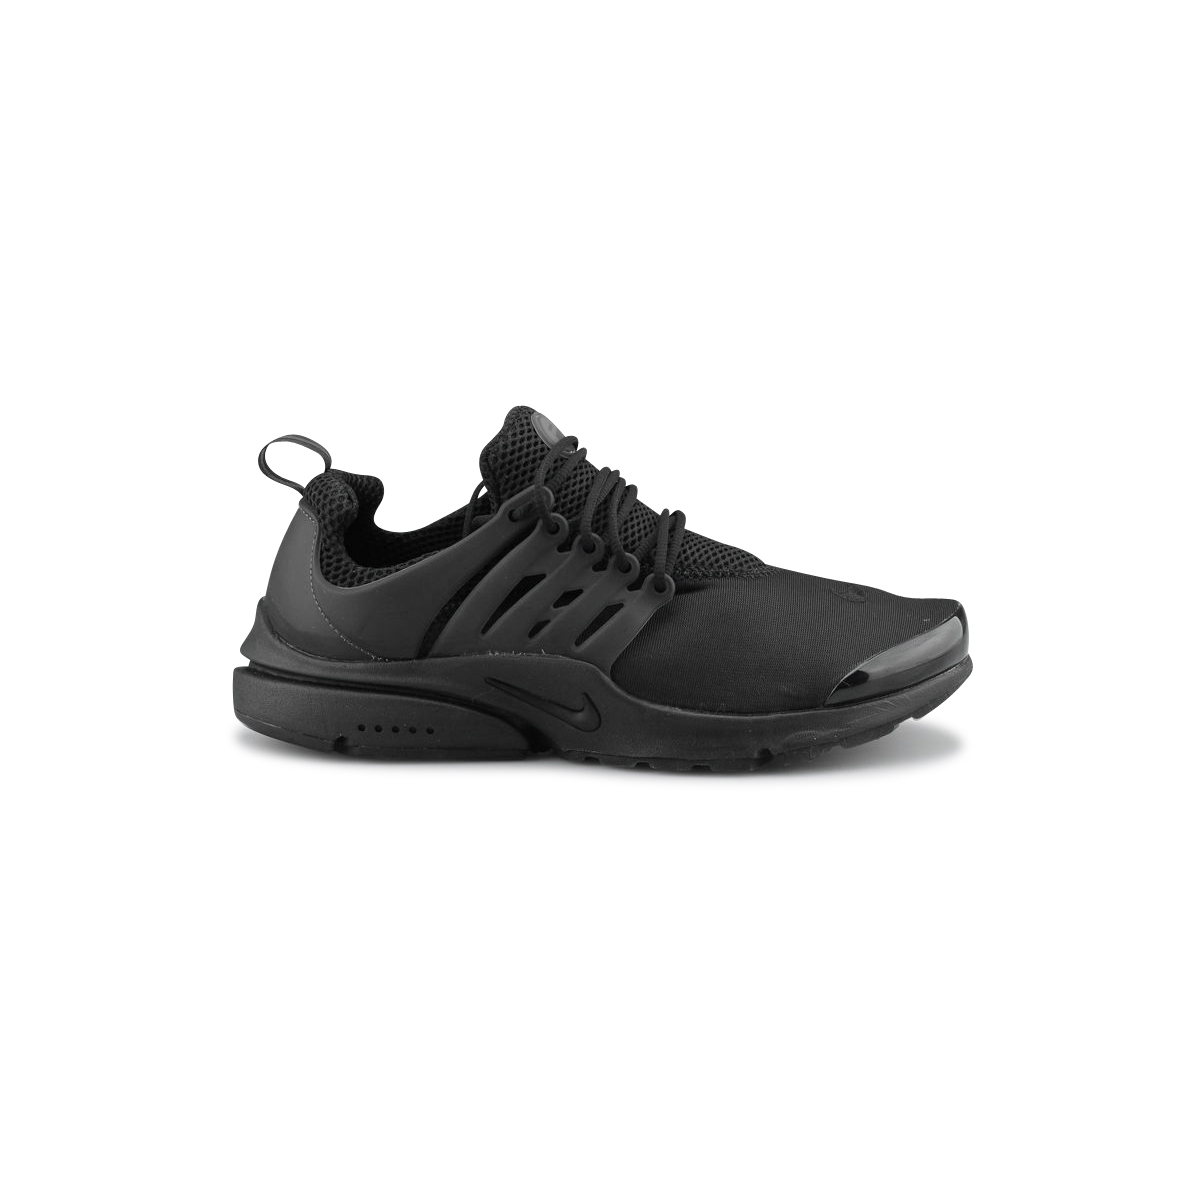 basket nike air presto noir 848132 009 noir noir achat vente basket les soldes sur. Black Bedroom Furniture Sets. Home Design Ideas